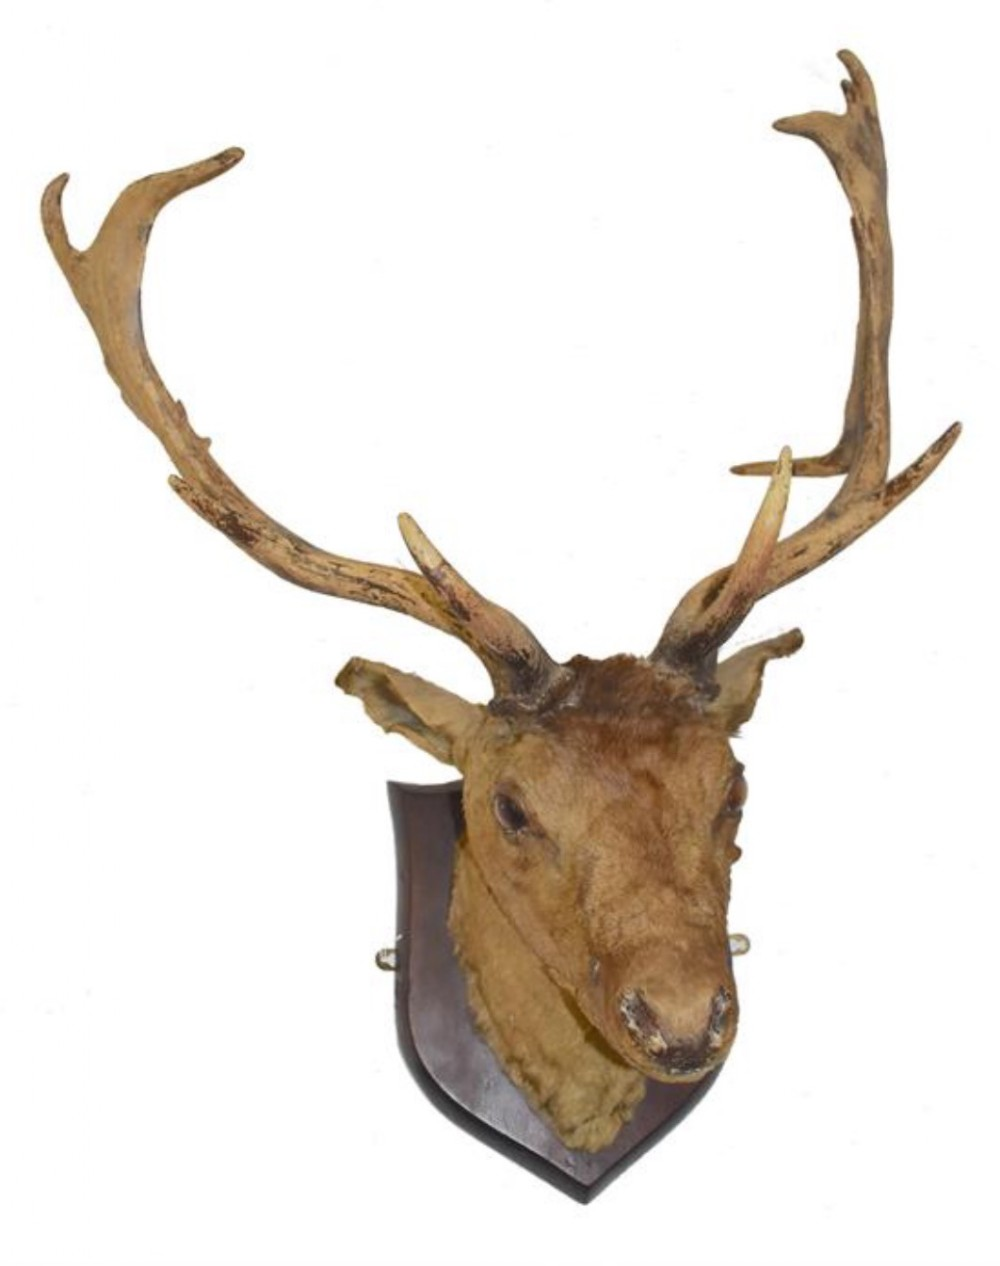 c19th mounted red deer taxidermy head and antlers